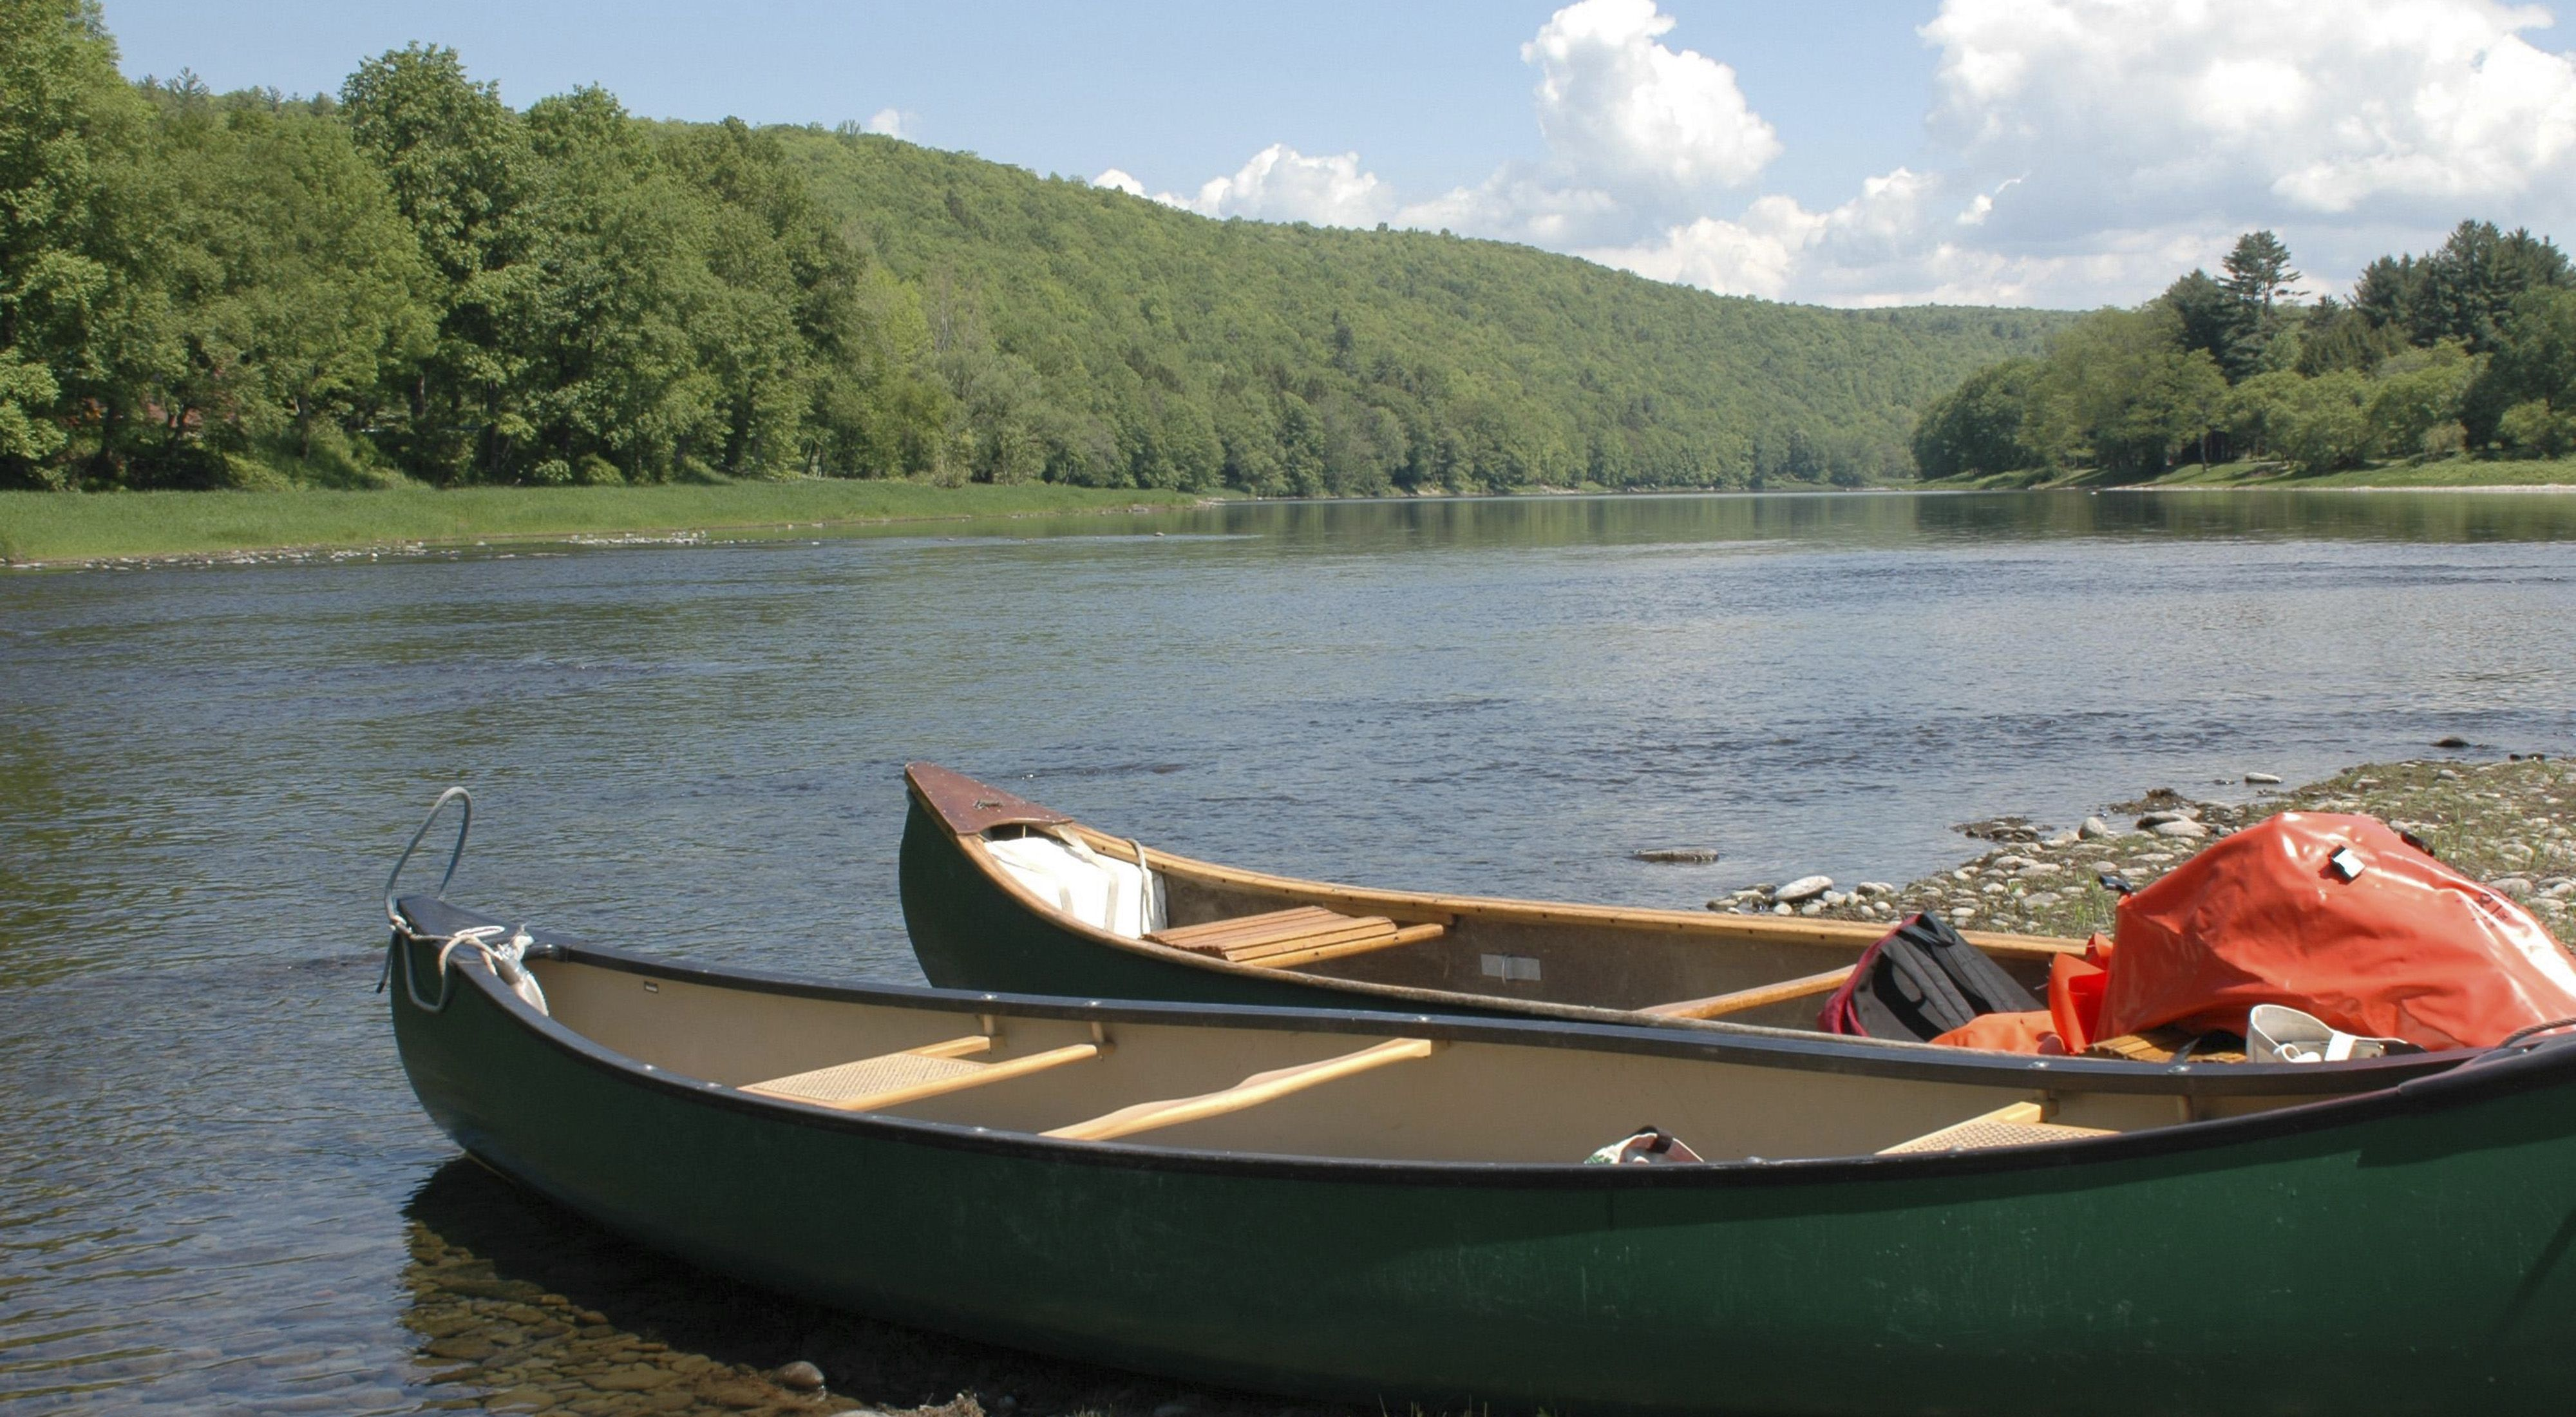 Two canoes are at rest on a lake.